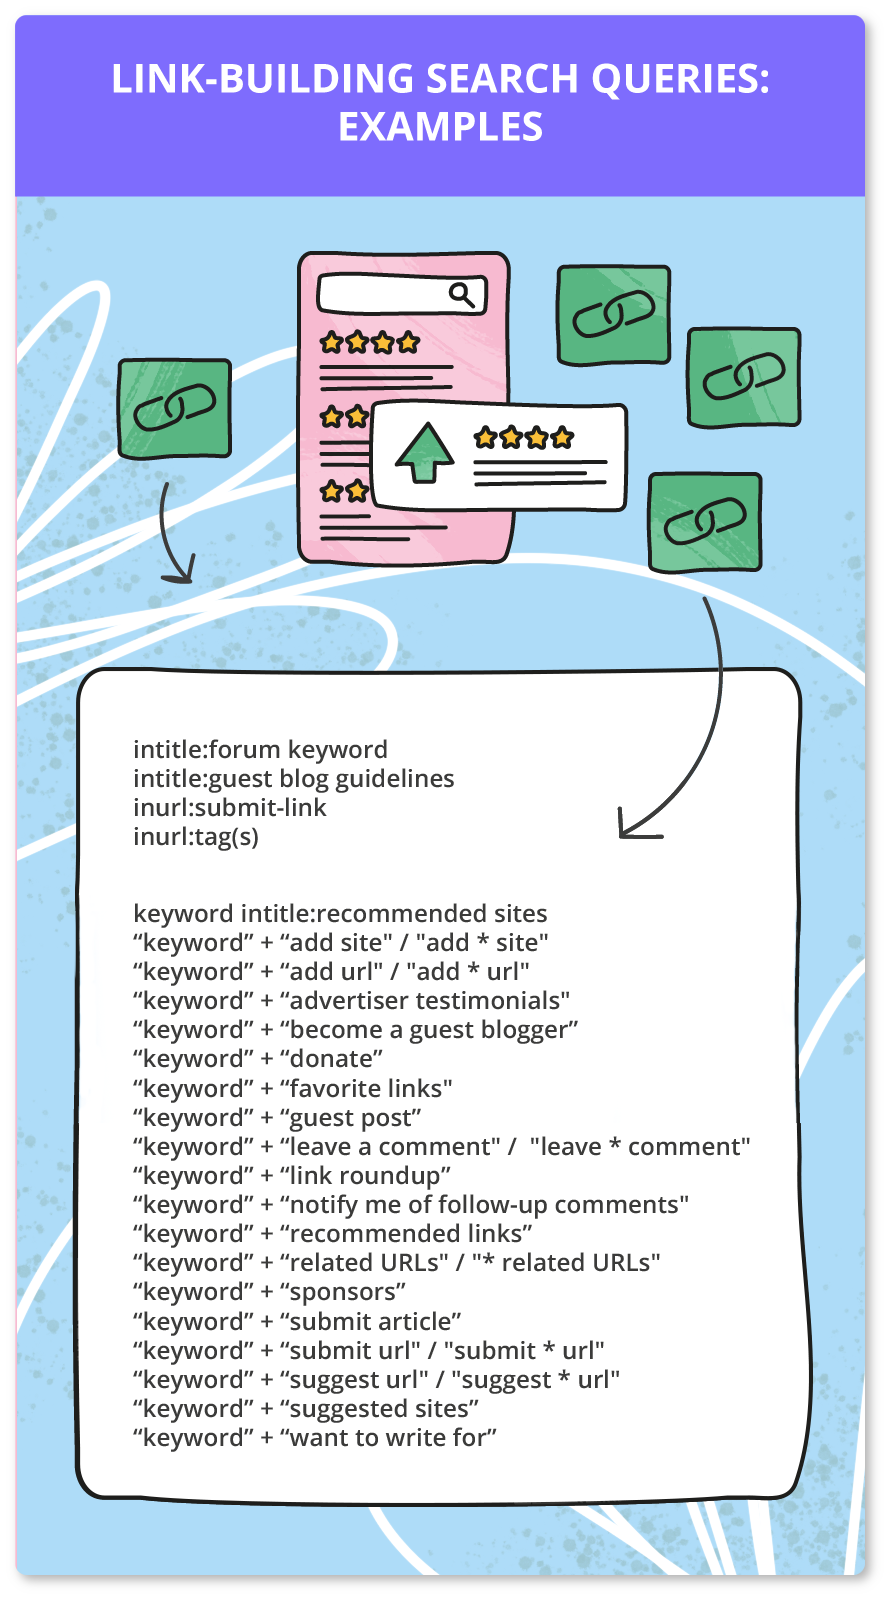 Link-building search queries